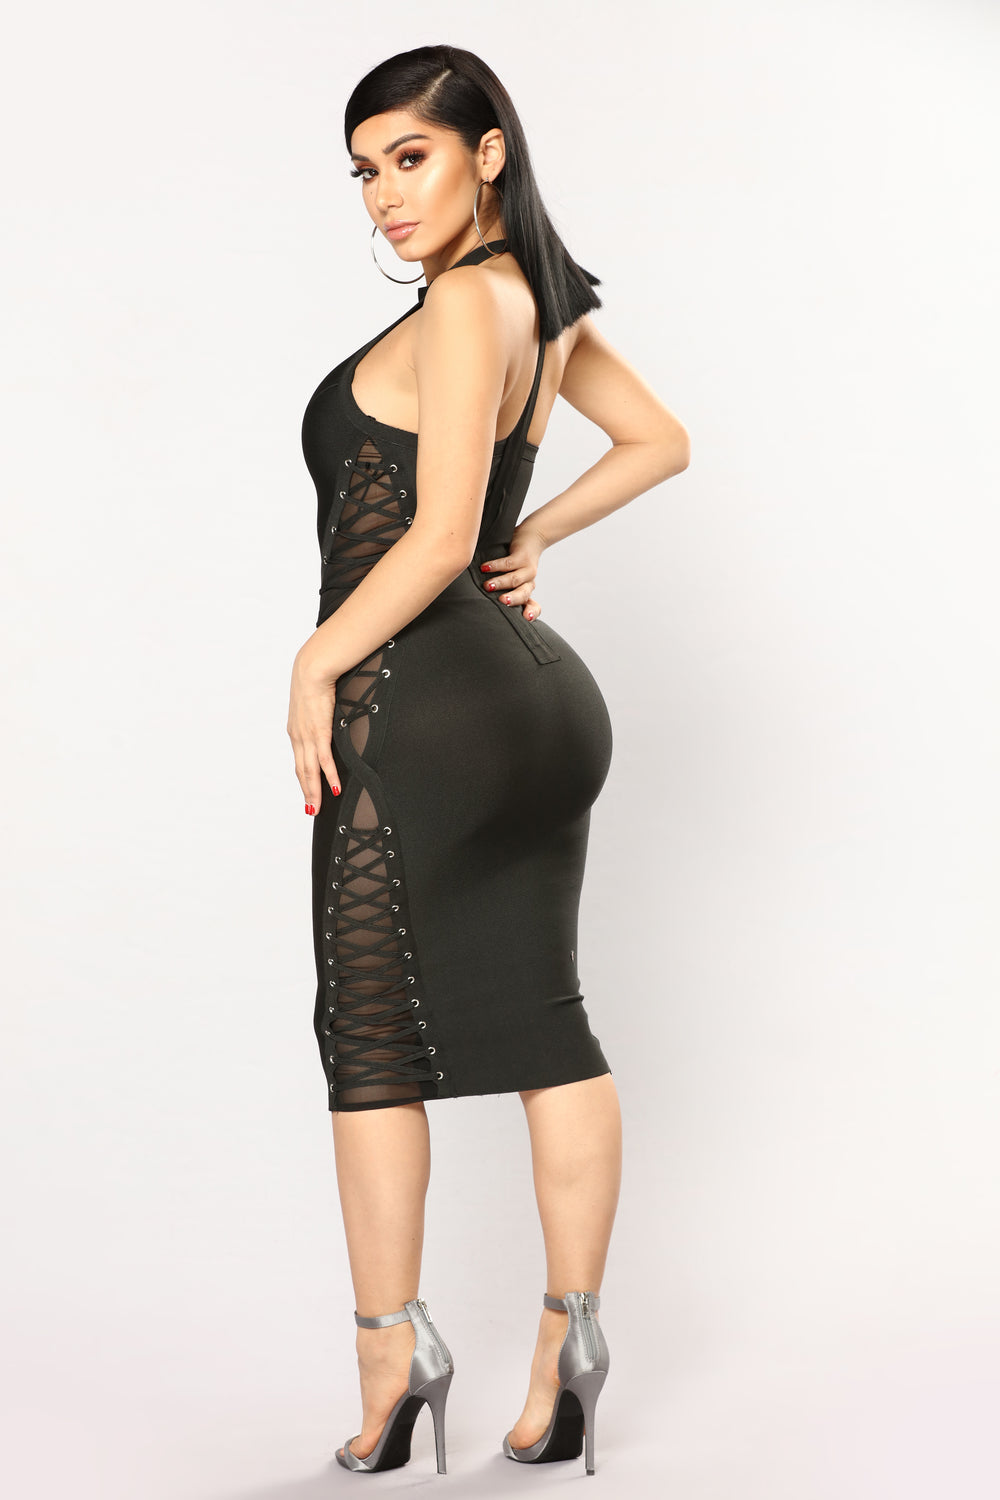 Marseille Bandage Dress - Black